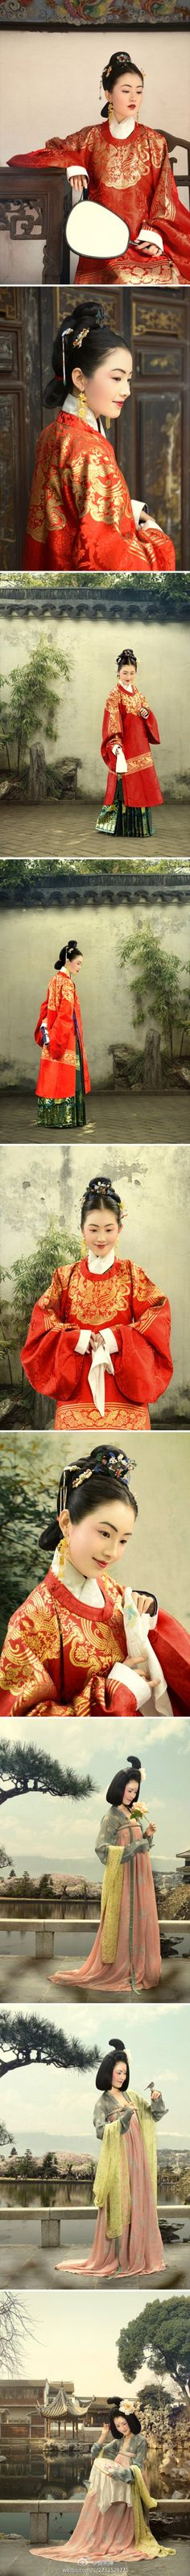 Embroidered Ming-style round collared Chang'ao. (Hanfu)